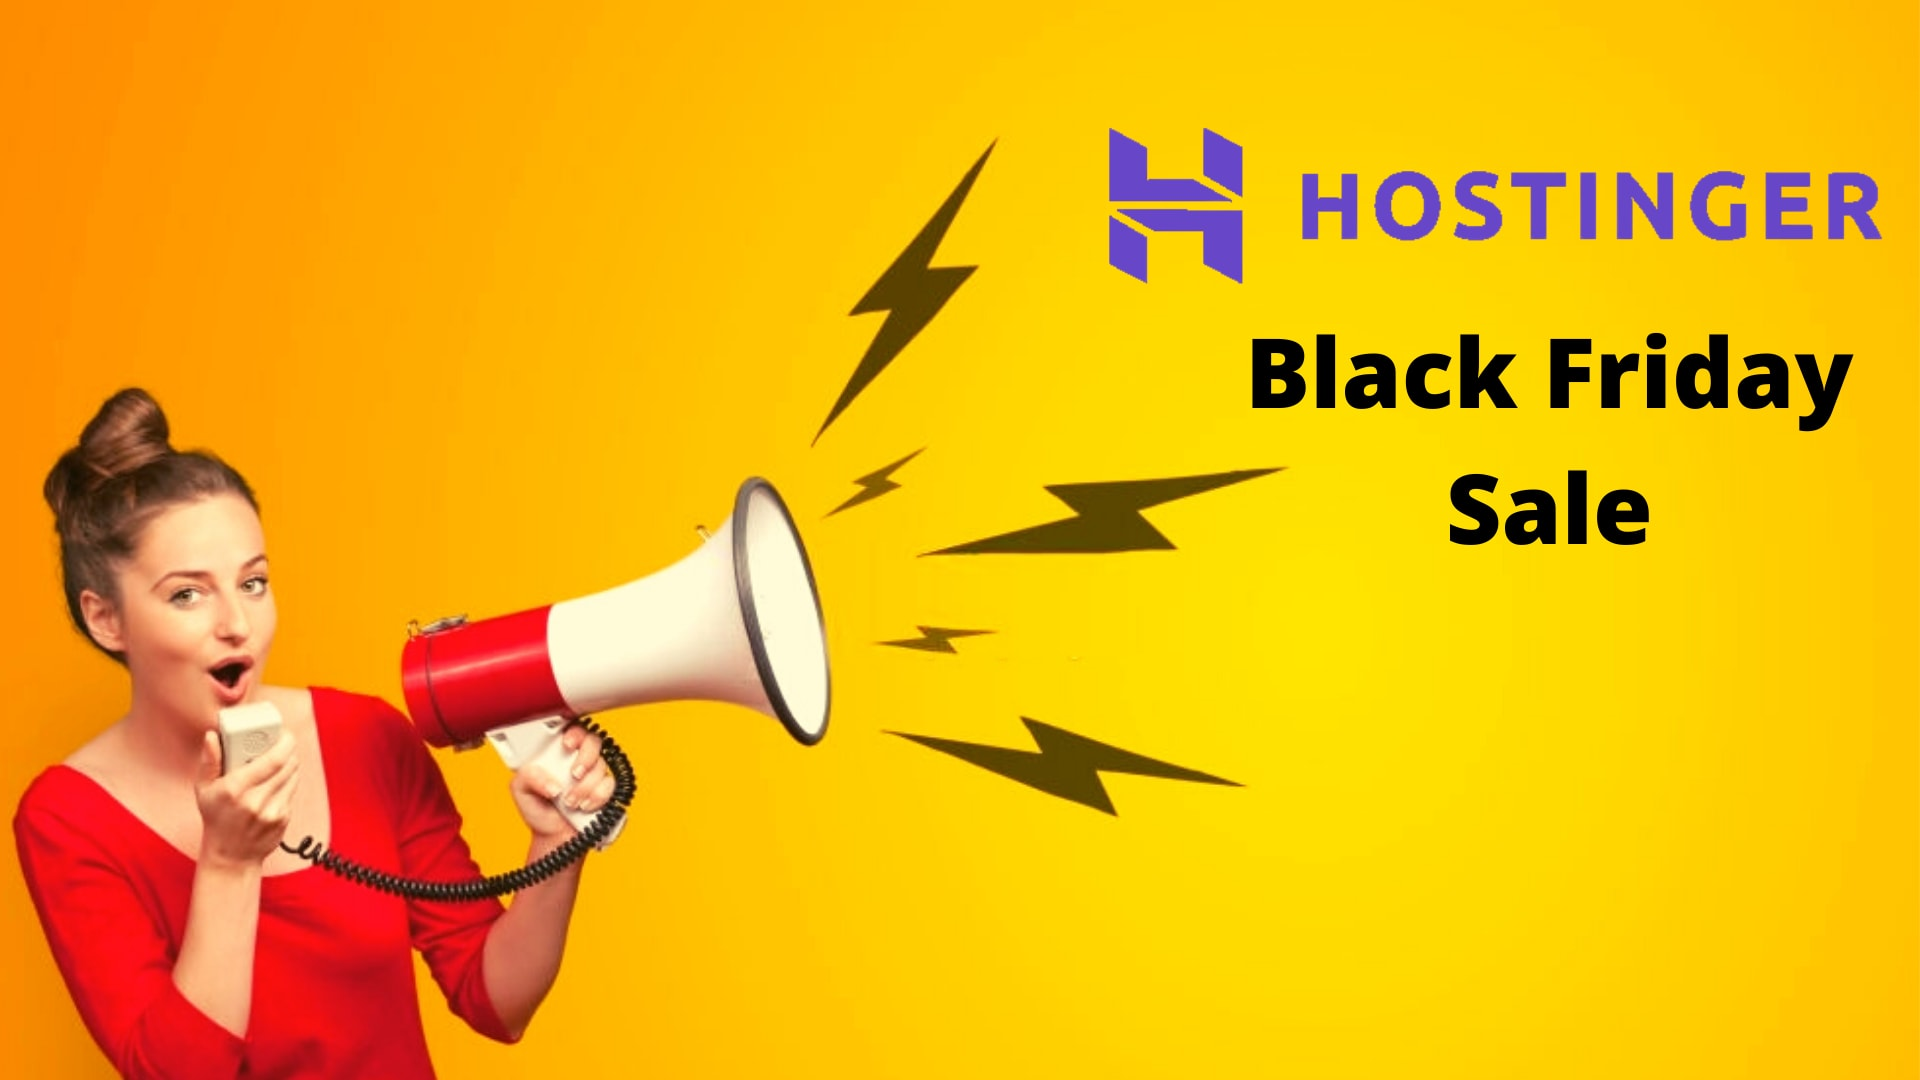 hostinger black friday deals 2020 - Top 10 Black Friday Hosting Deals 2020